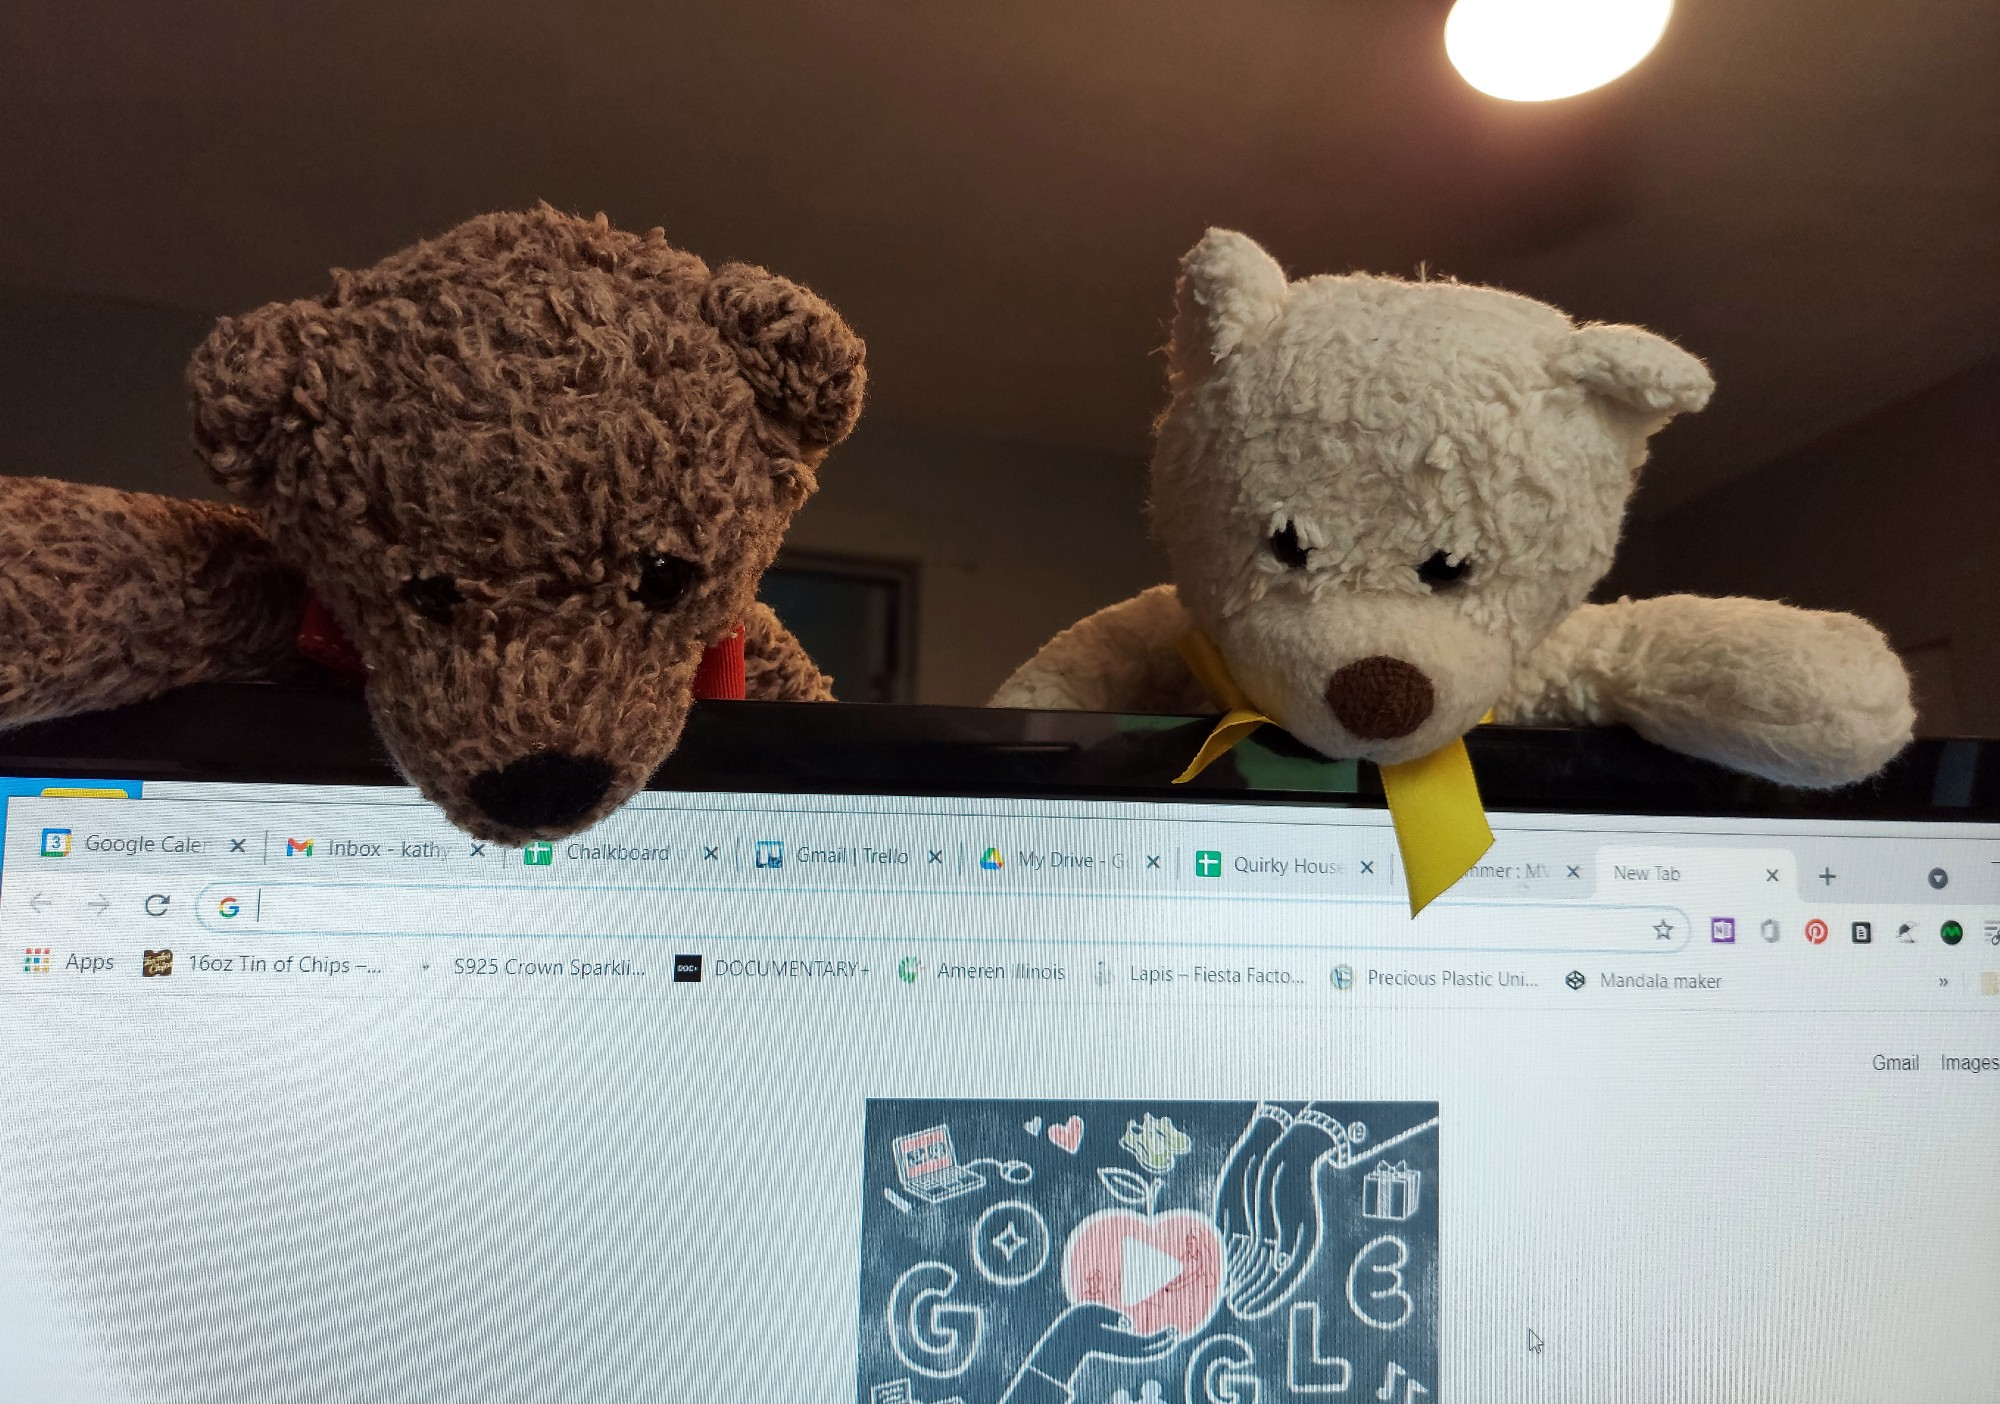 Two of my small teddy bears looking down on a computer monitor